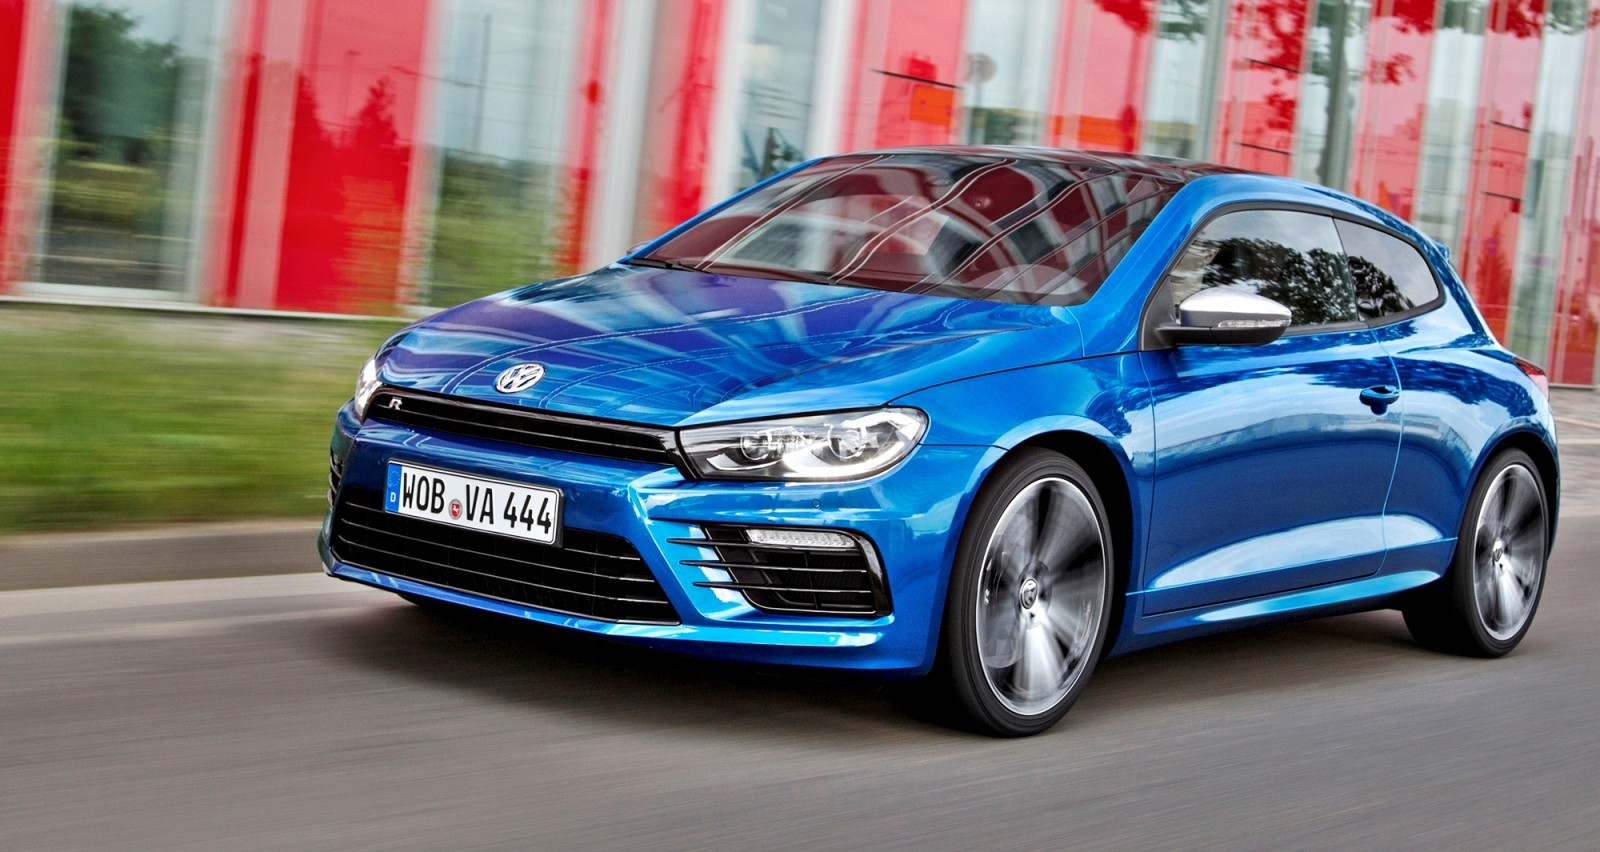 2014 Volkswagen Scirocco R and R-Line - Dynamic Launch Galleries 25